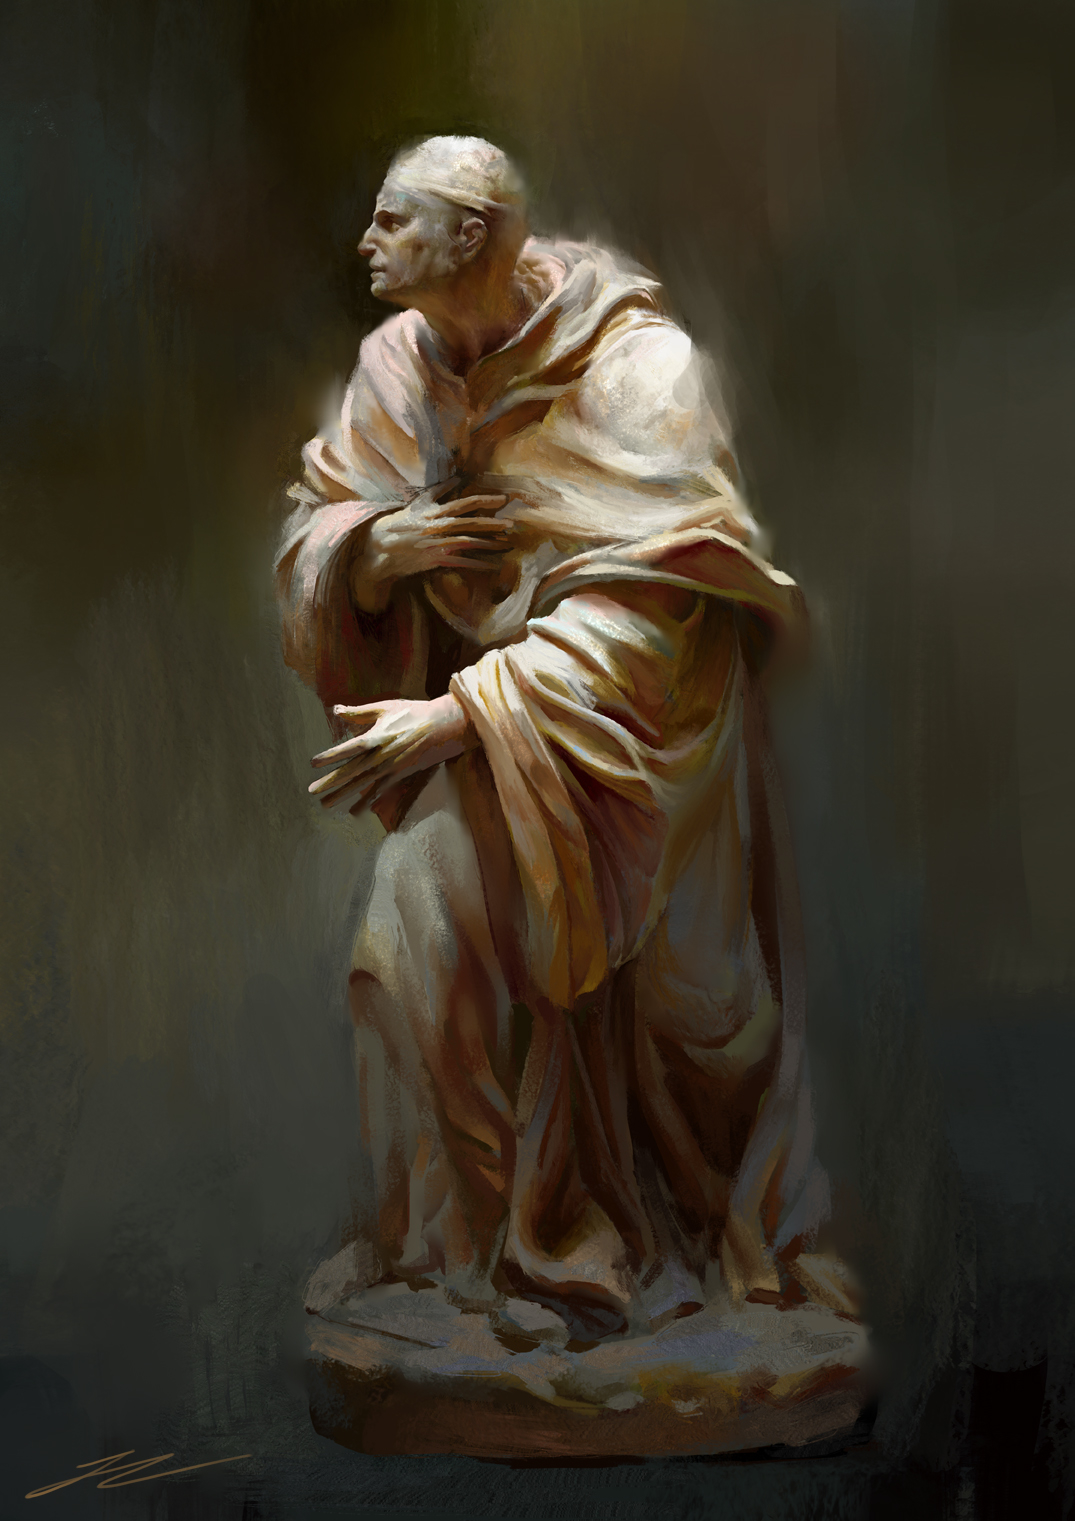 The statue of practice